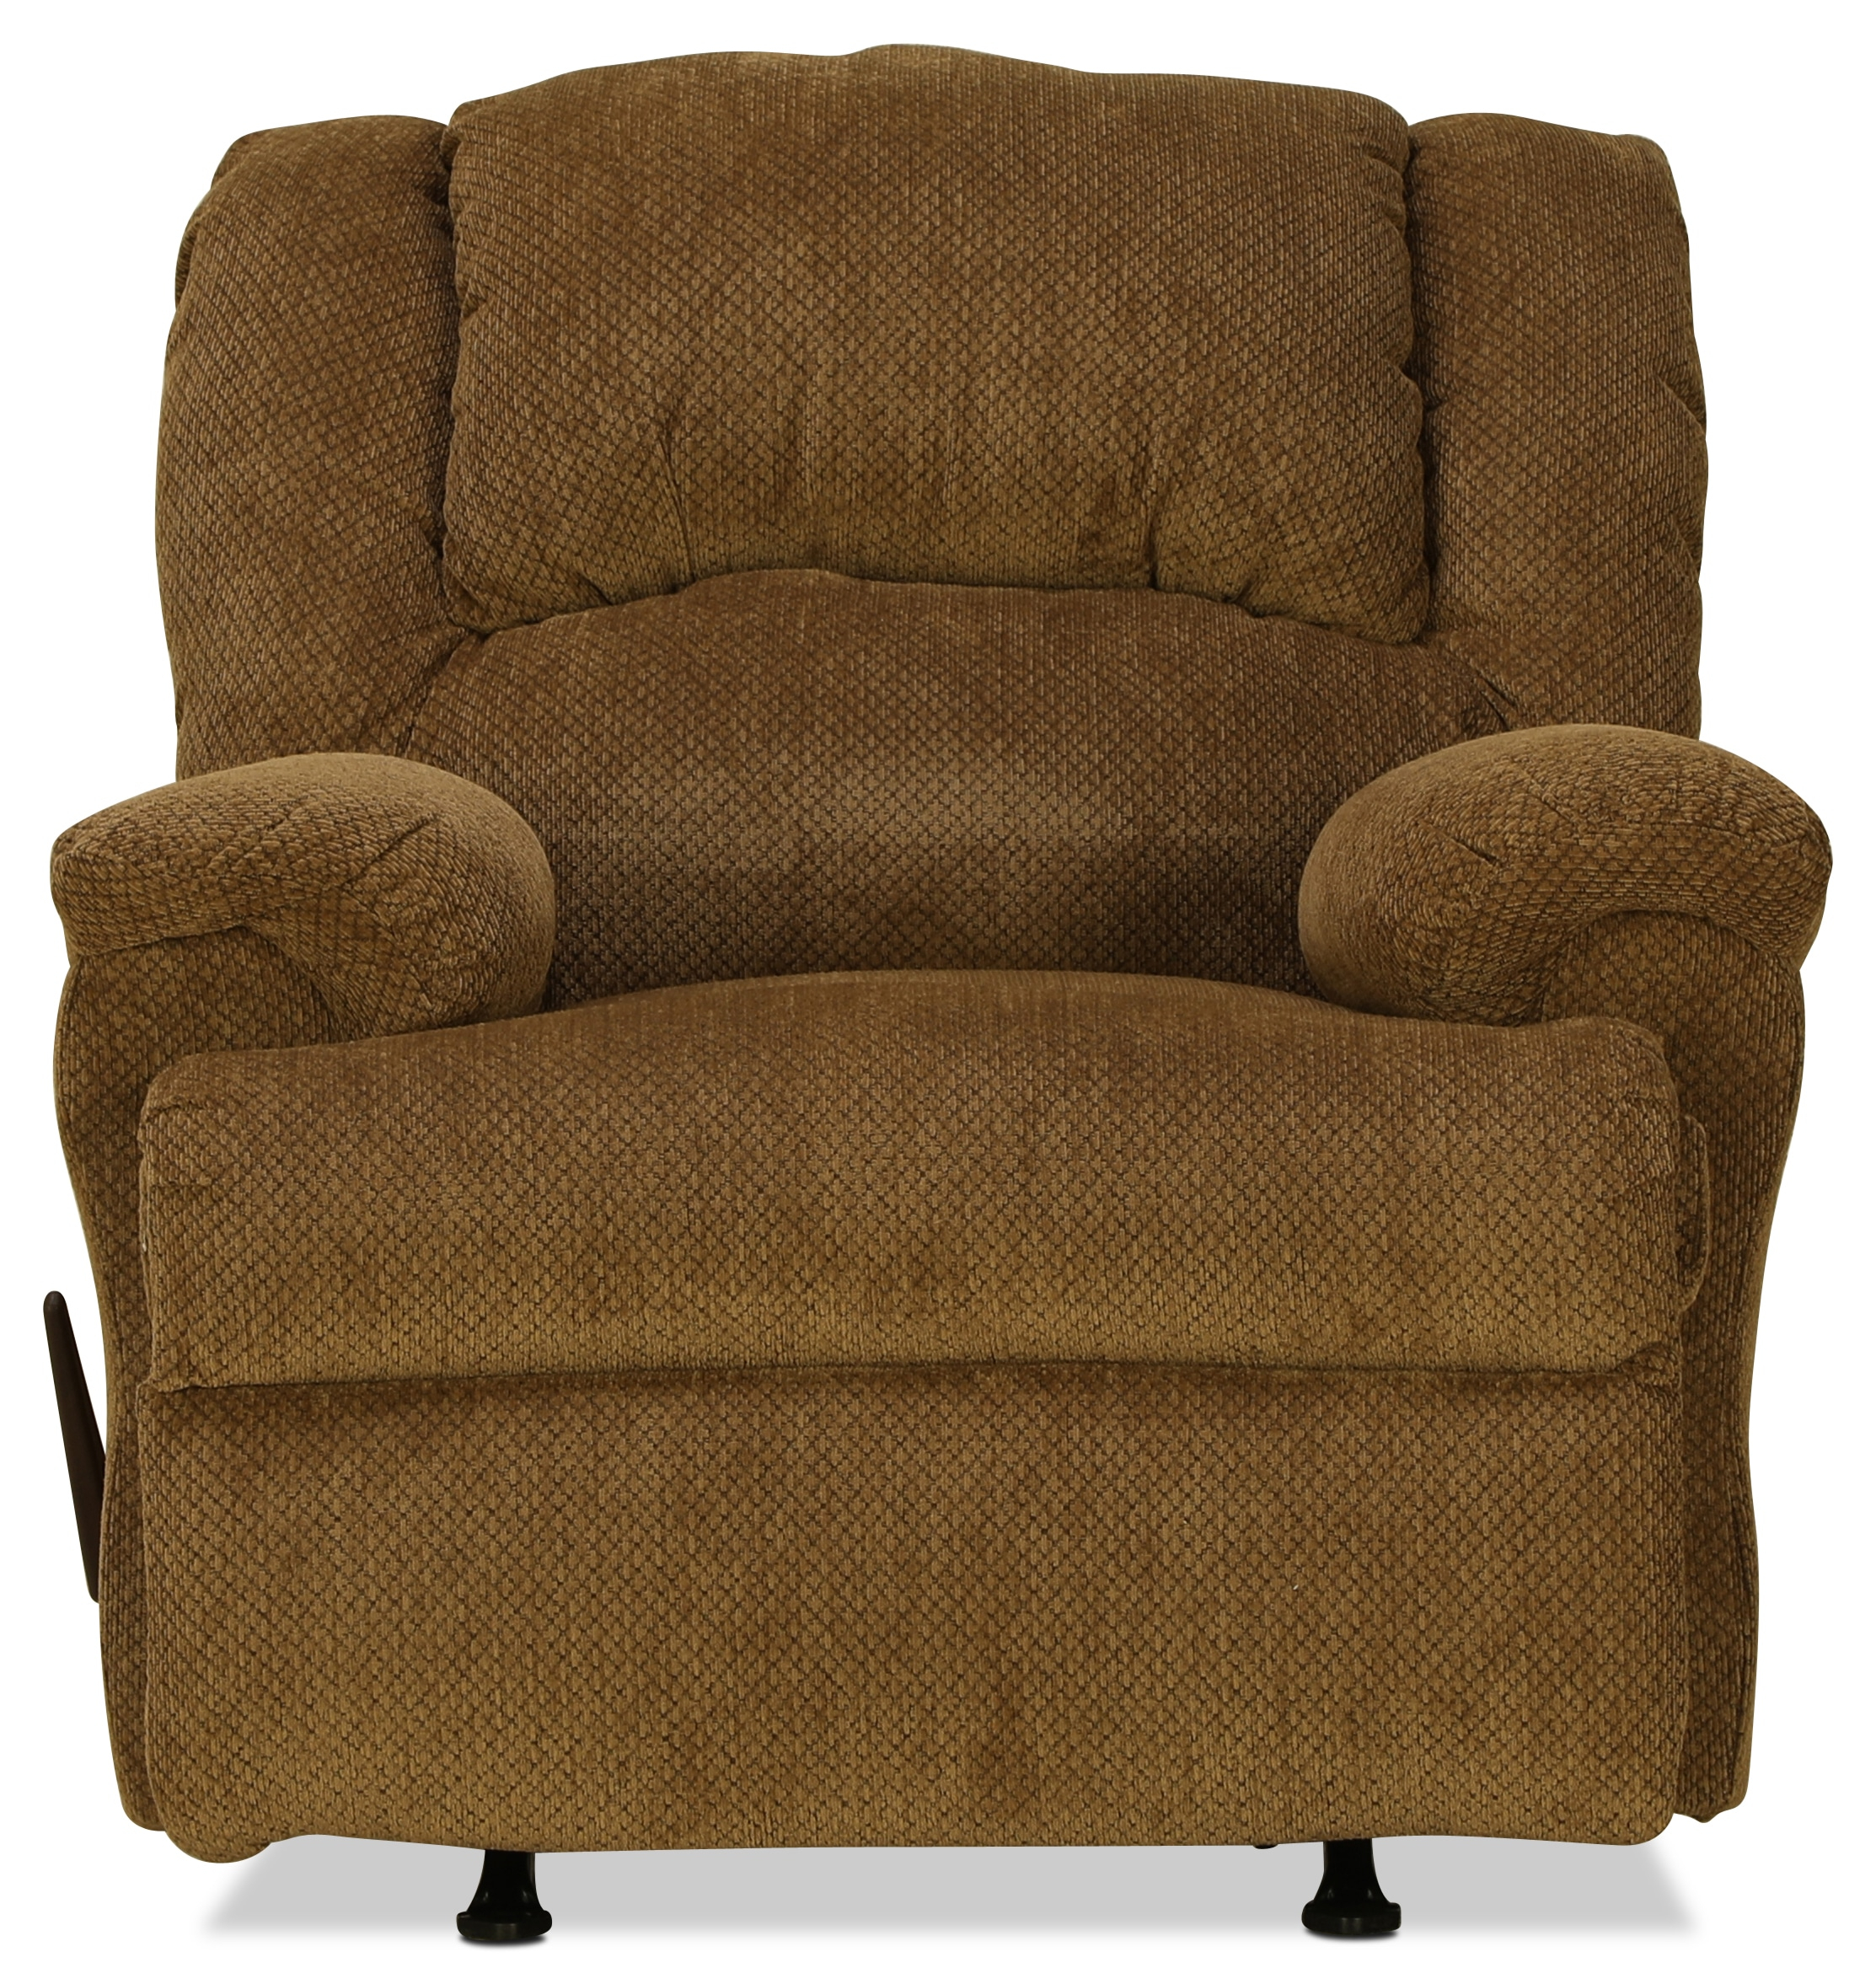 Decker Rocker Recliner - Mocha | within Decker Ii Fabric Swivel Glider Recliners